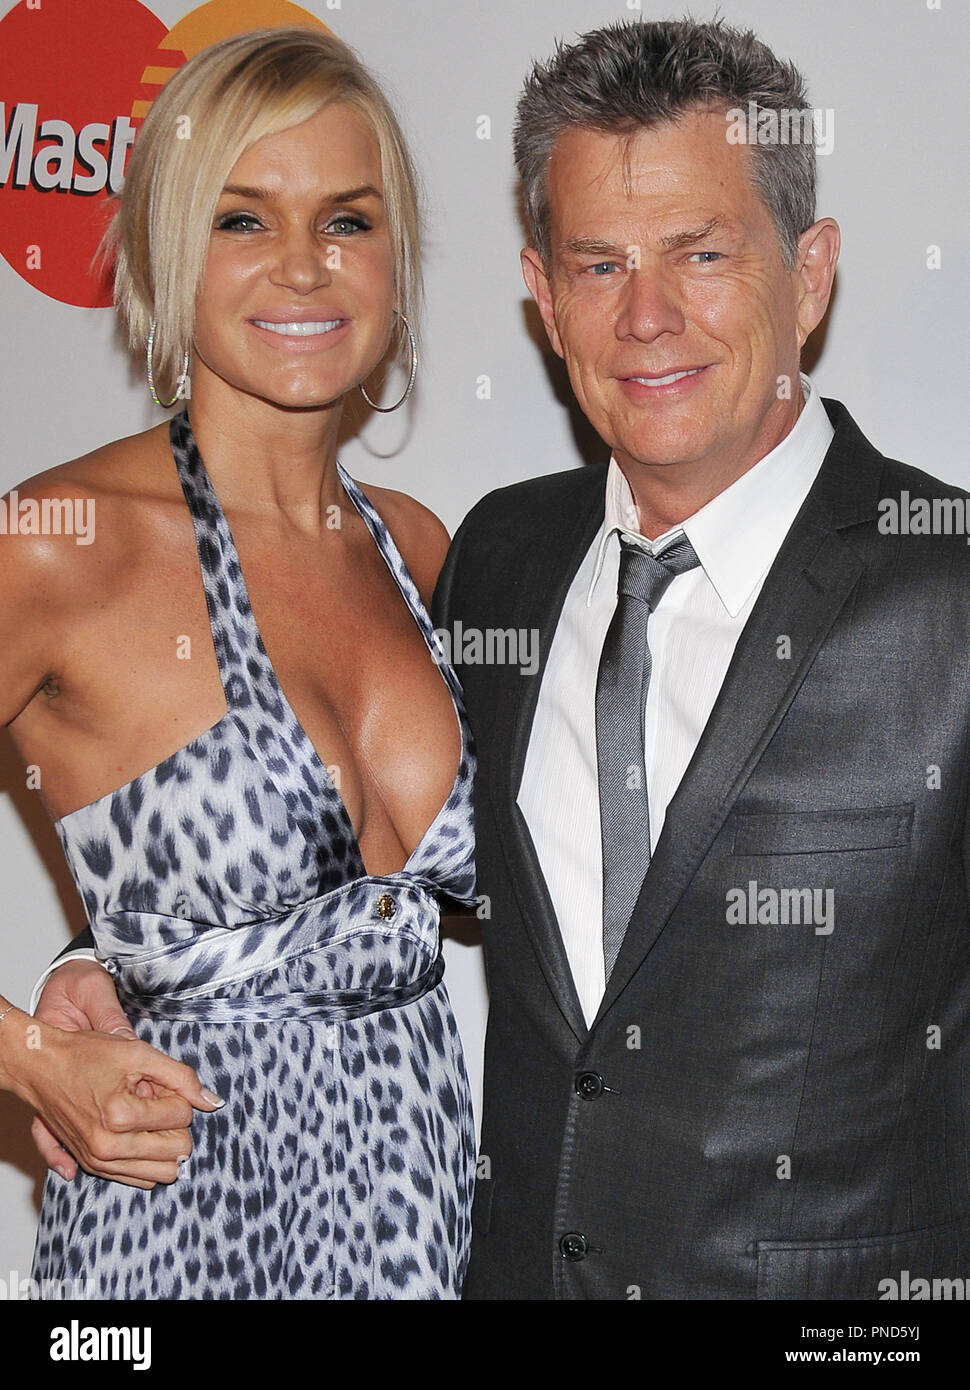 David Foster & wife Yolanda Foster at The Recording Academy and Clive Davis 2010 Pre-Grammy Gala held at the Beverly Hilton Hotel in Beverly Hills, CA. The event took place on Saturday, January 30, 2010. Photo by PRPP_Pacific Rim Photo Press. /PictureLux File Reference # DavidFoster_WifeYolanda_13010PLX   For Editorial Use Only -  All Rights Reserved - Stock Image